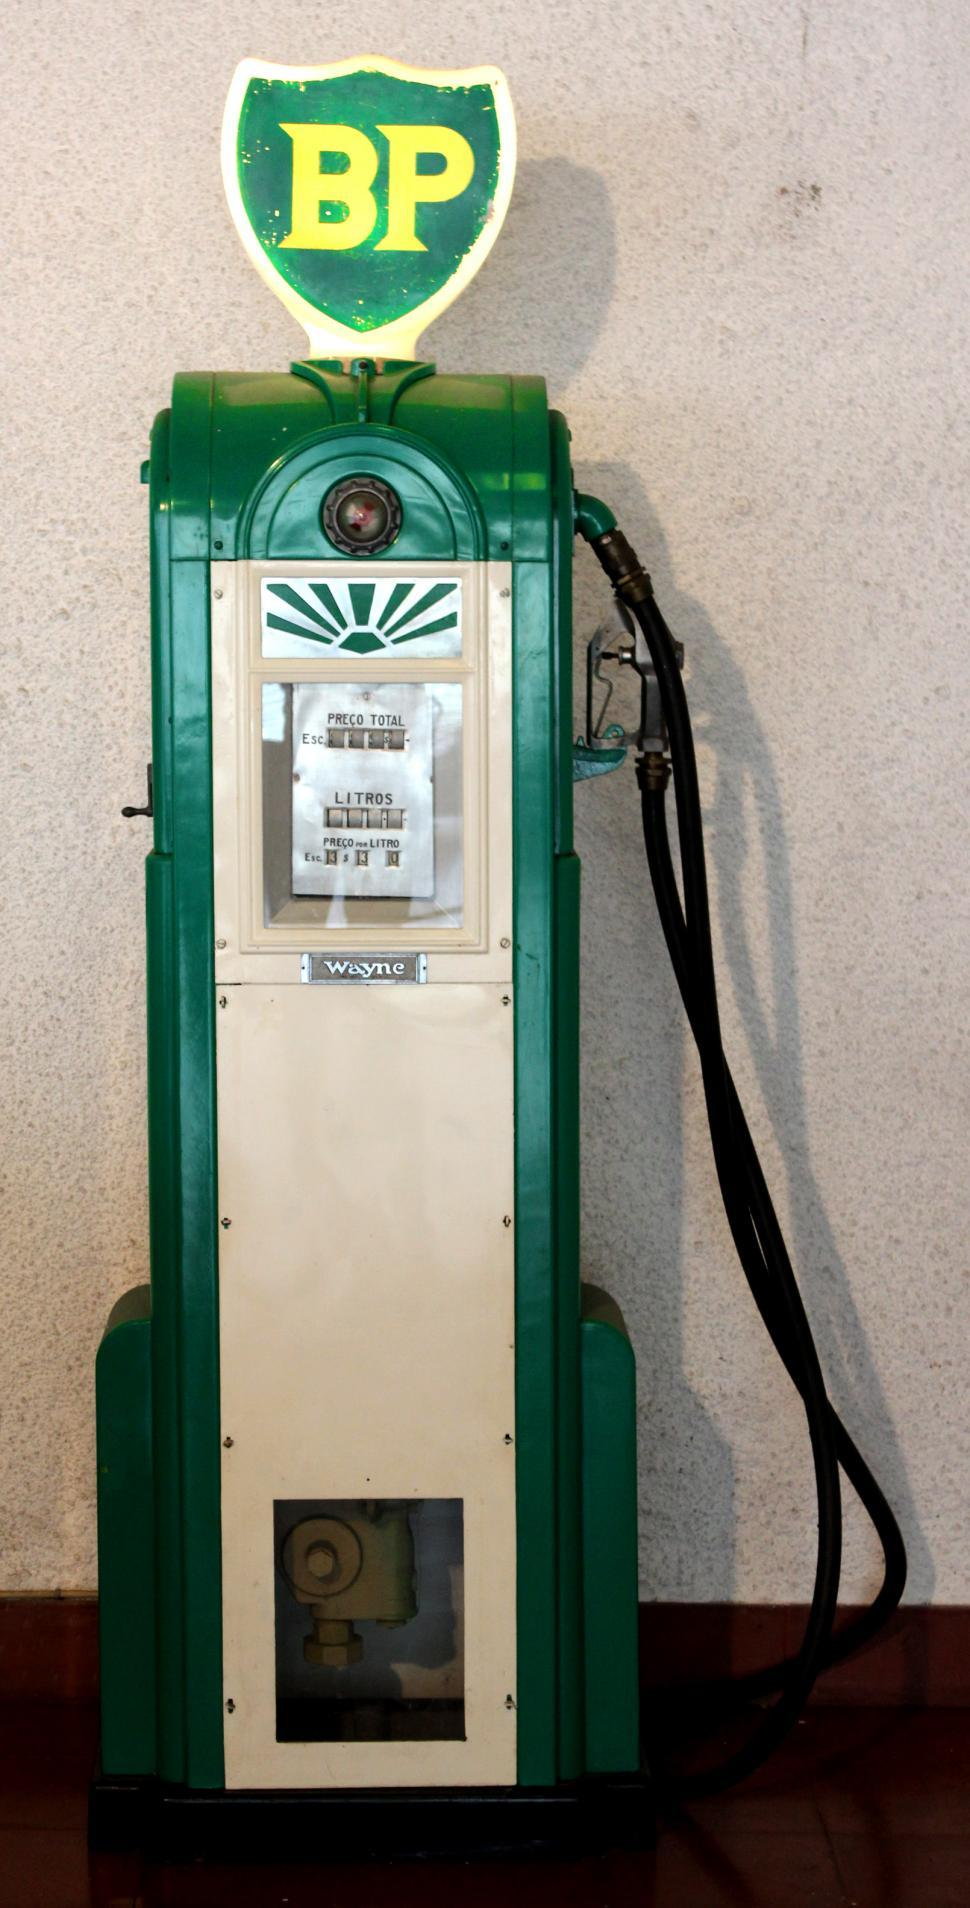 Download Free Stock Photo of Classic BP Fuel Pump